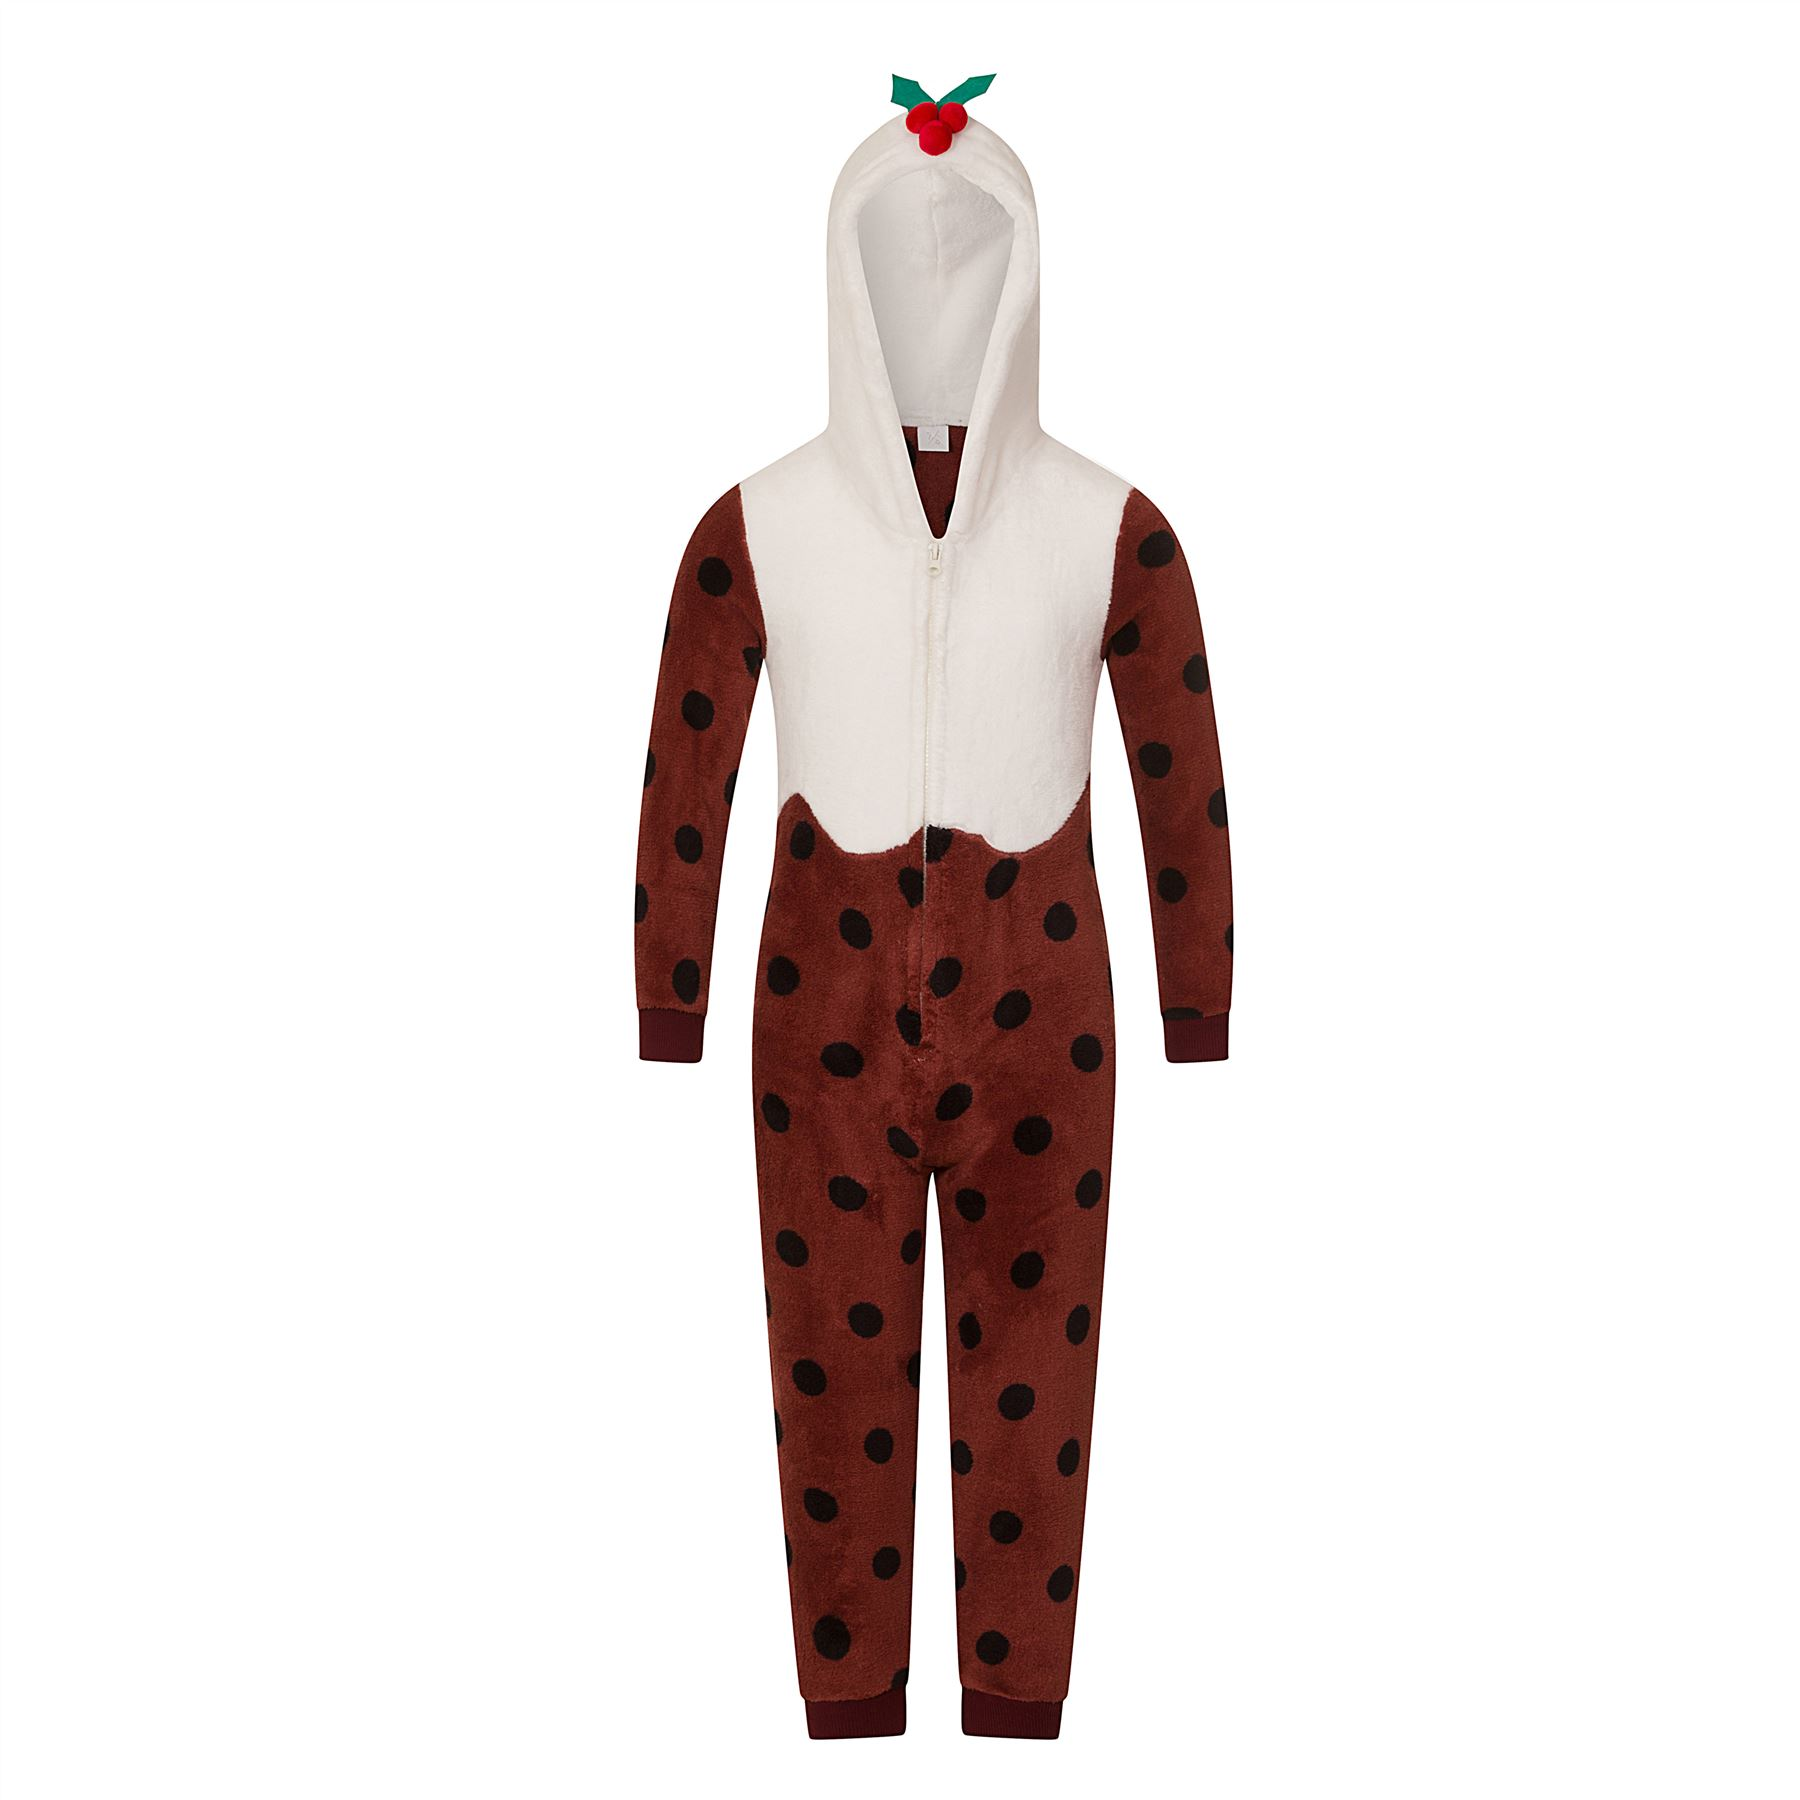 Ladies//Womens//Girls Fleece All In One Pyjamas Outfit Costume Hood Size 6-22